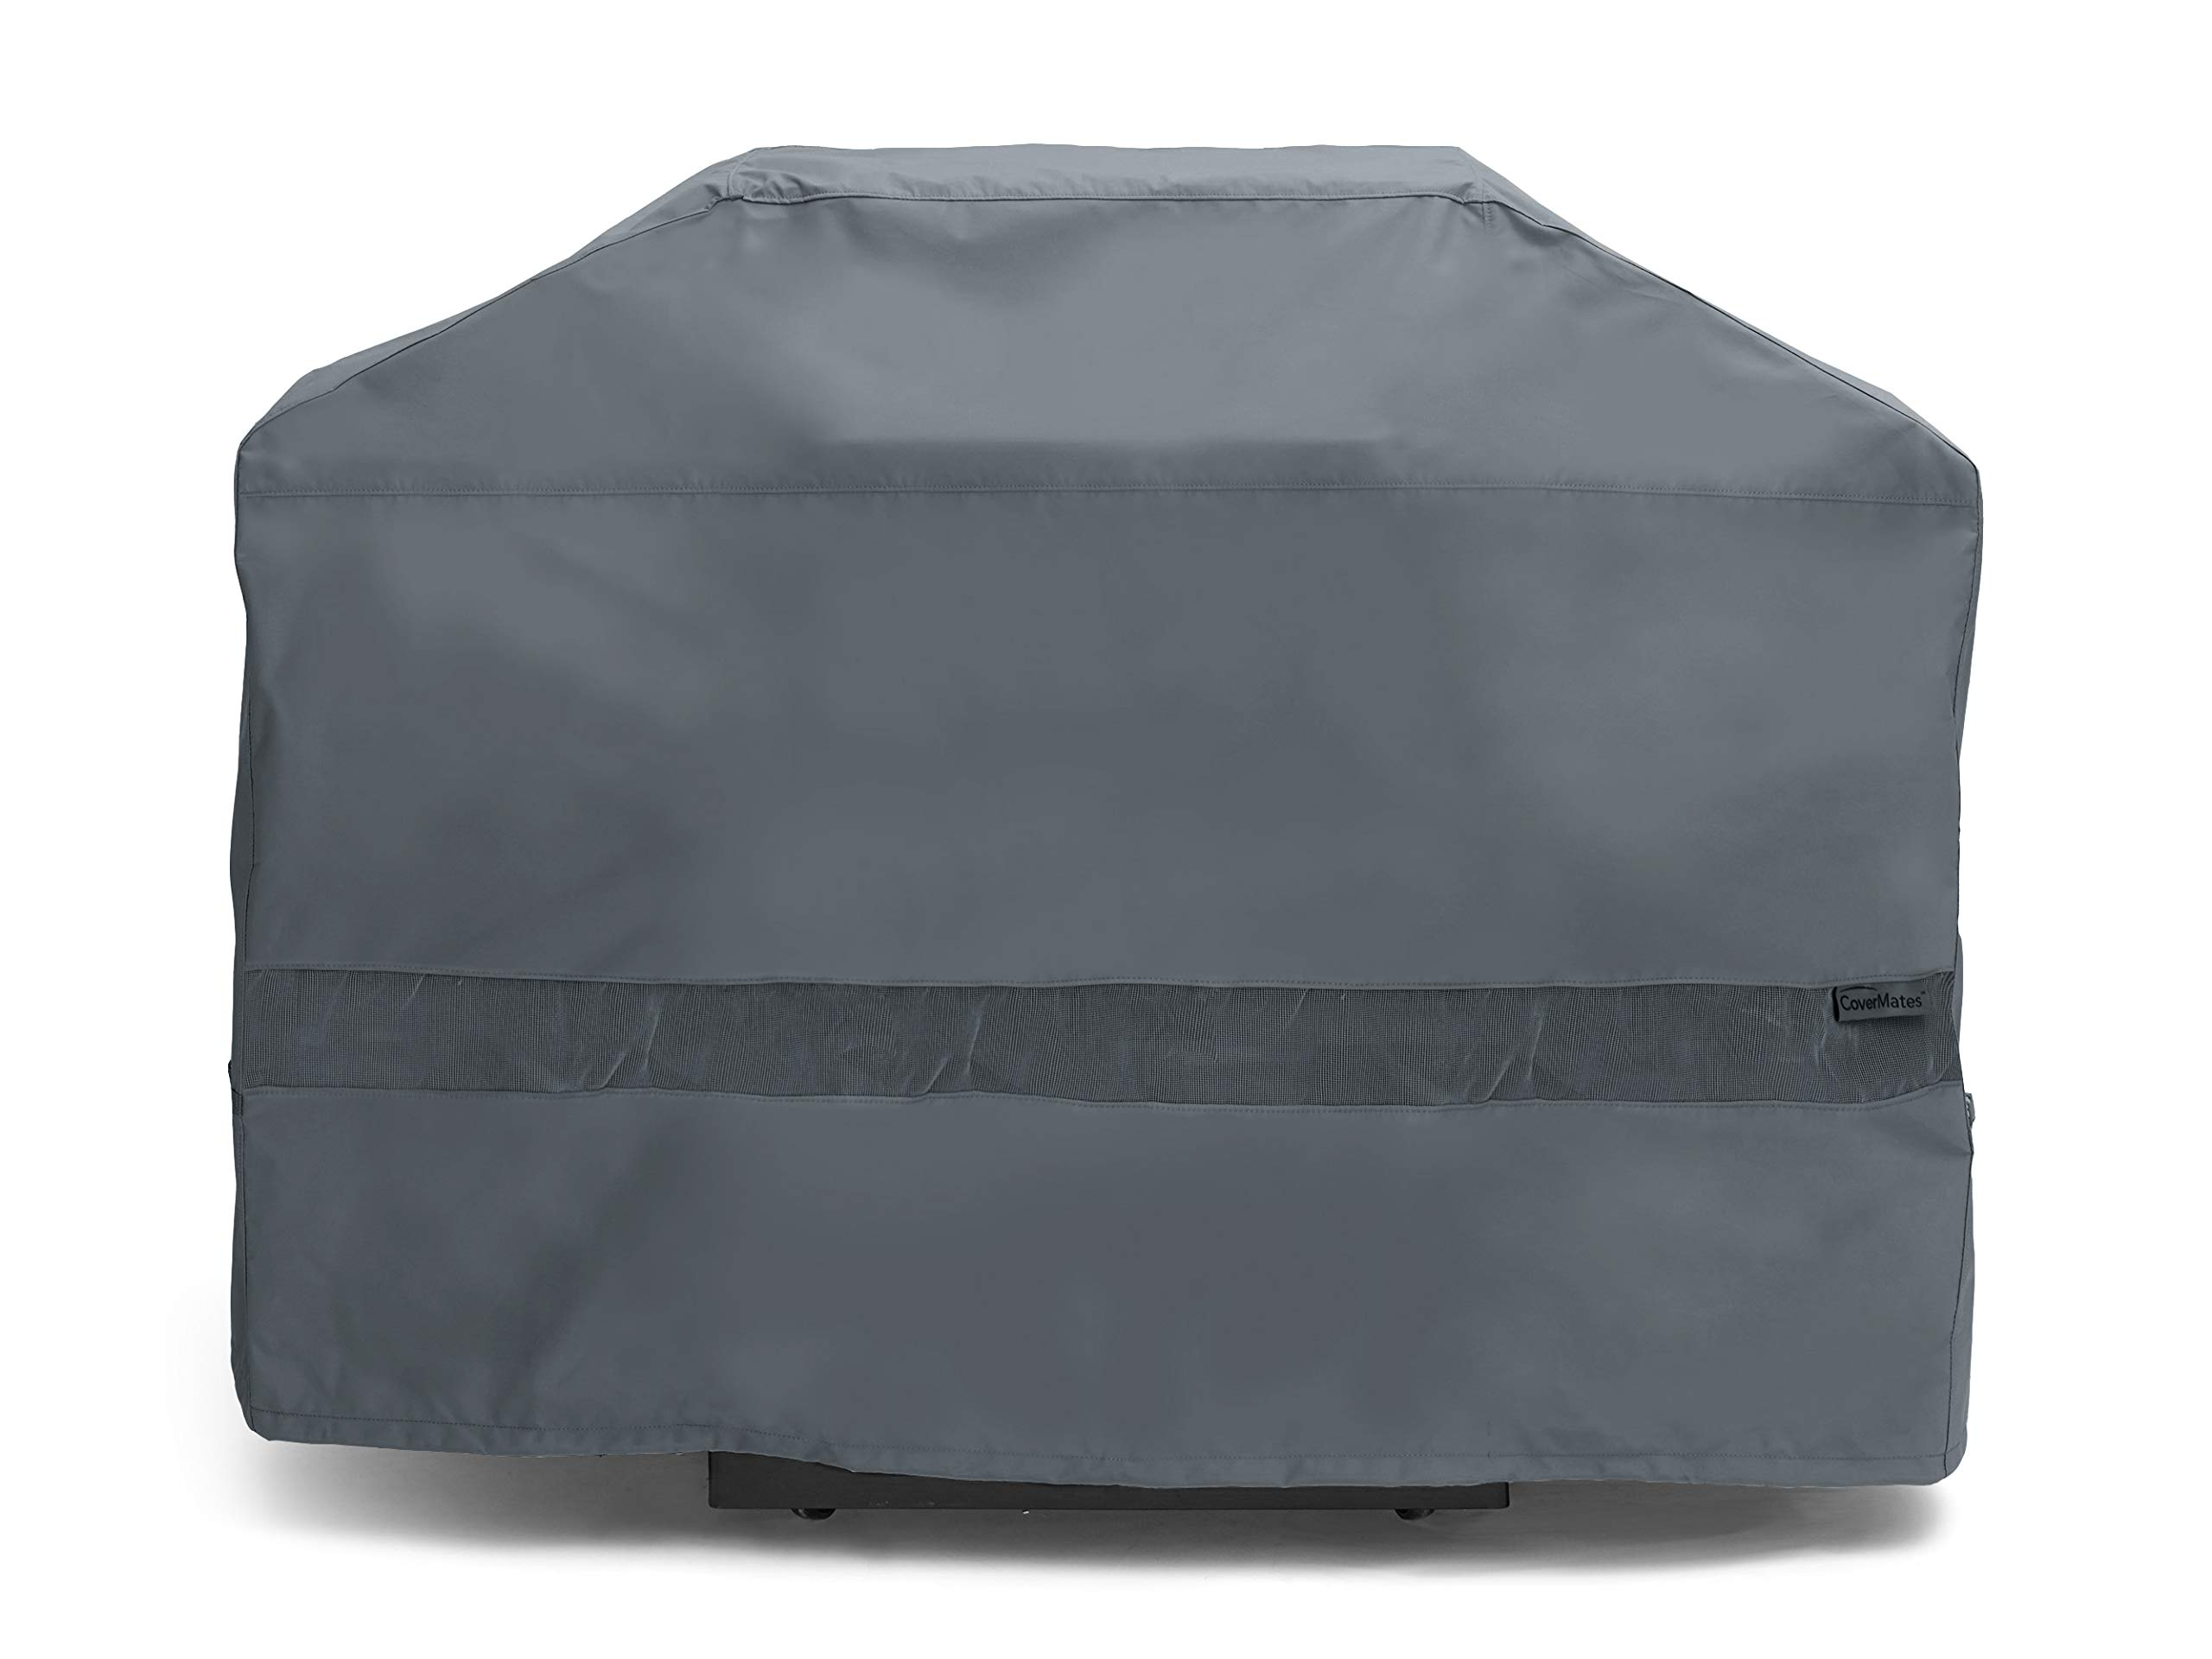 Covermates – Grill Cover – 92W x 30D x 46H – Elite – Open Mesh Vent for Breathability – Adjustable Drawcord to Cinch Cover – 3 YR Warranty – Weather Resistant - Charcoal